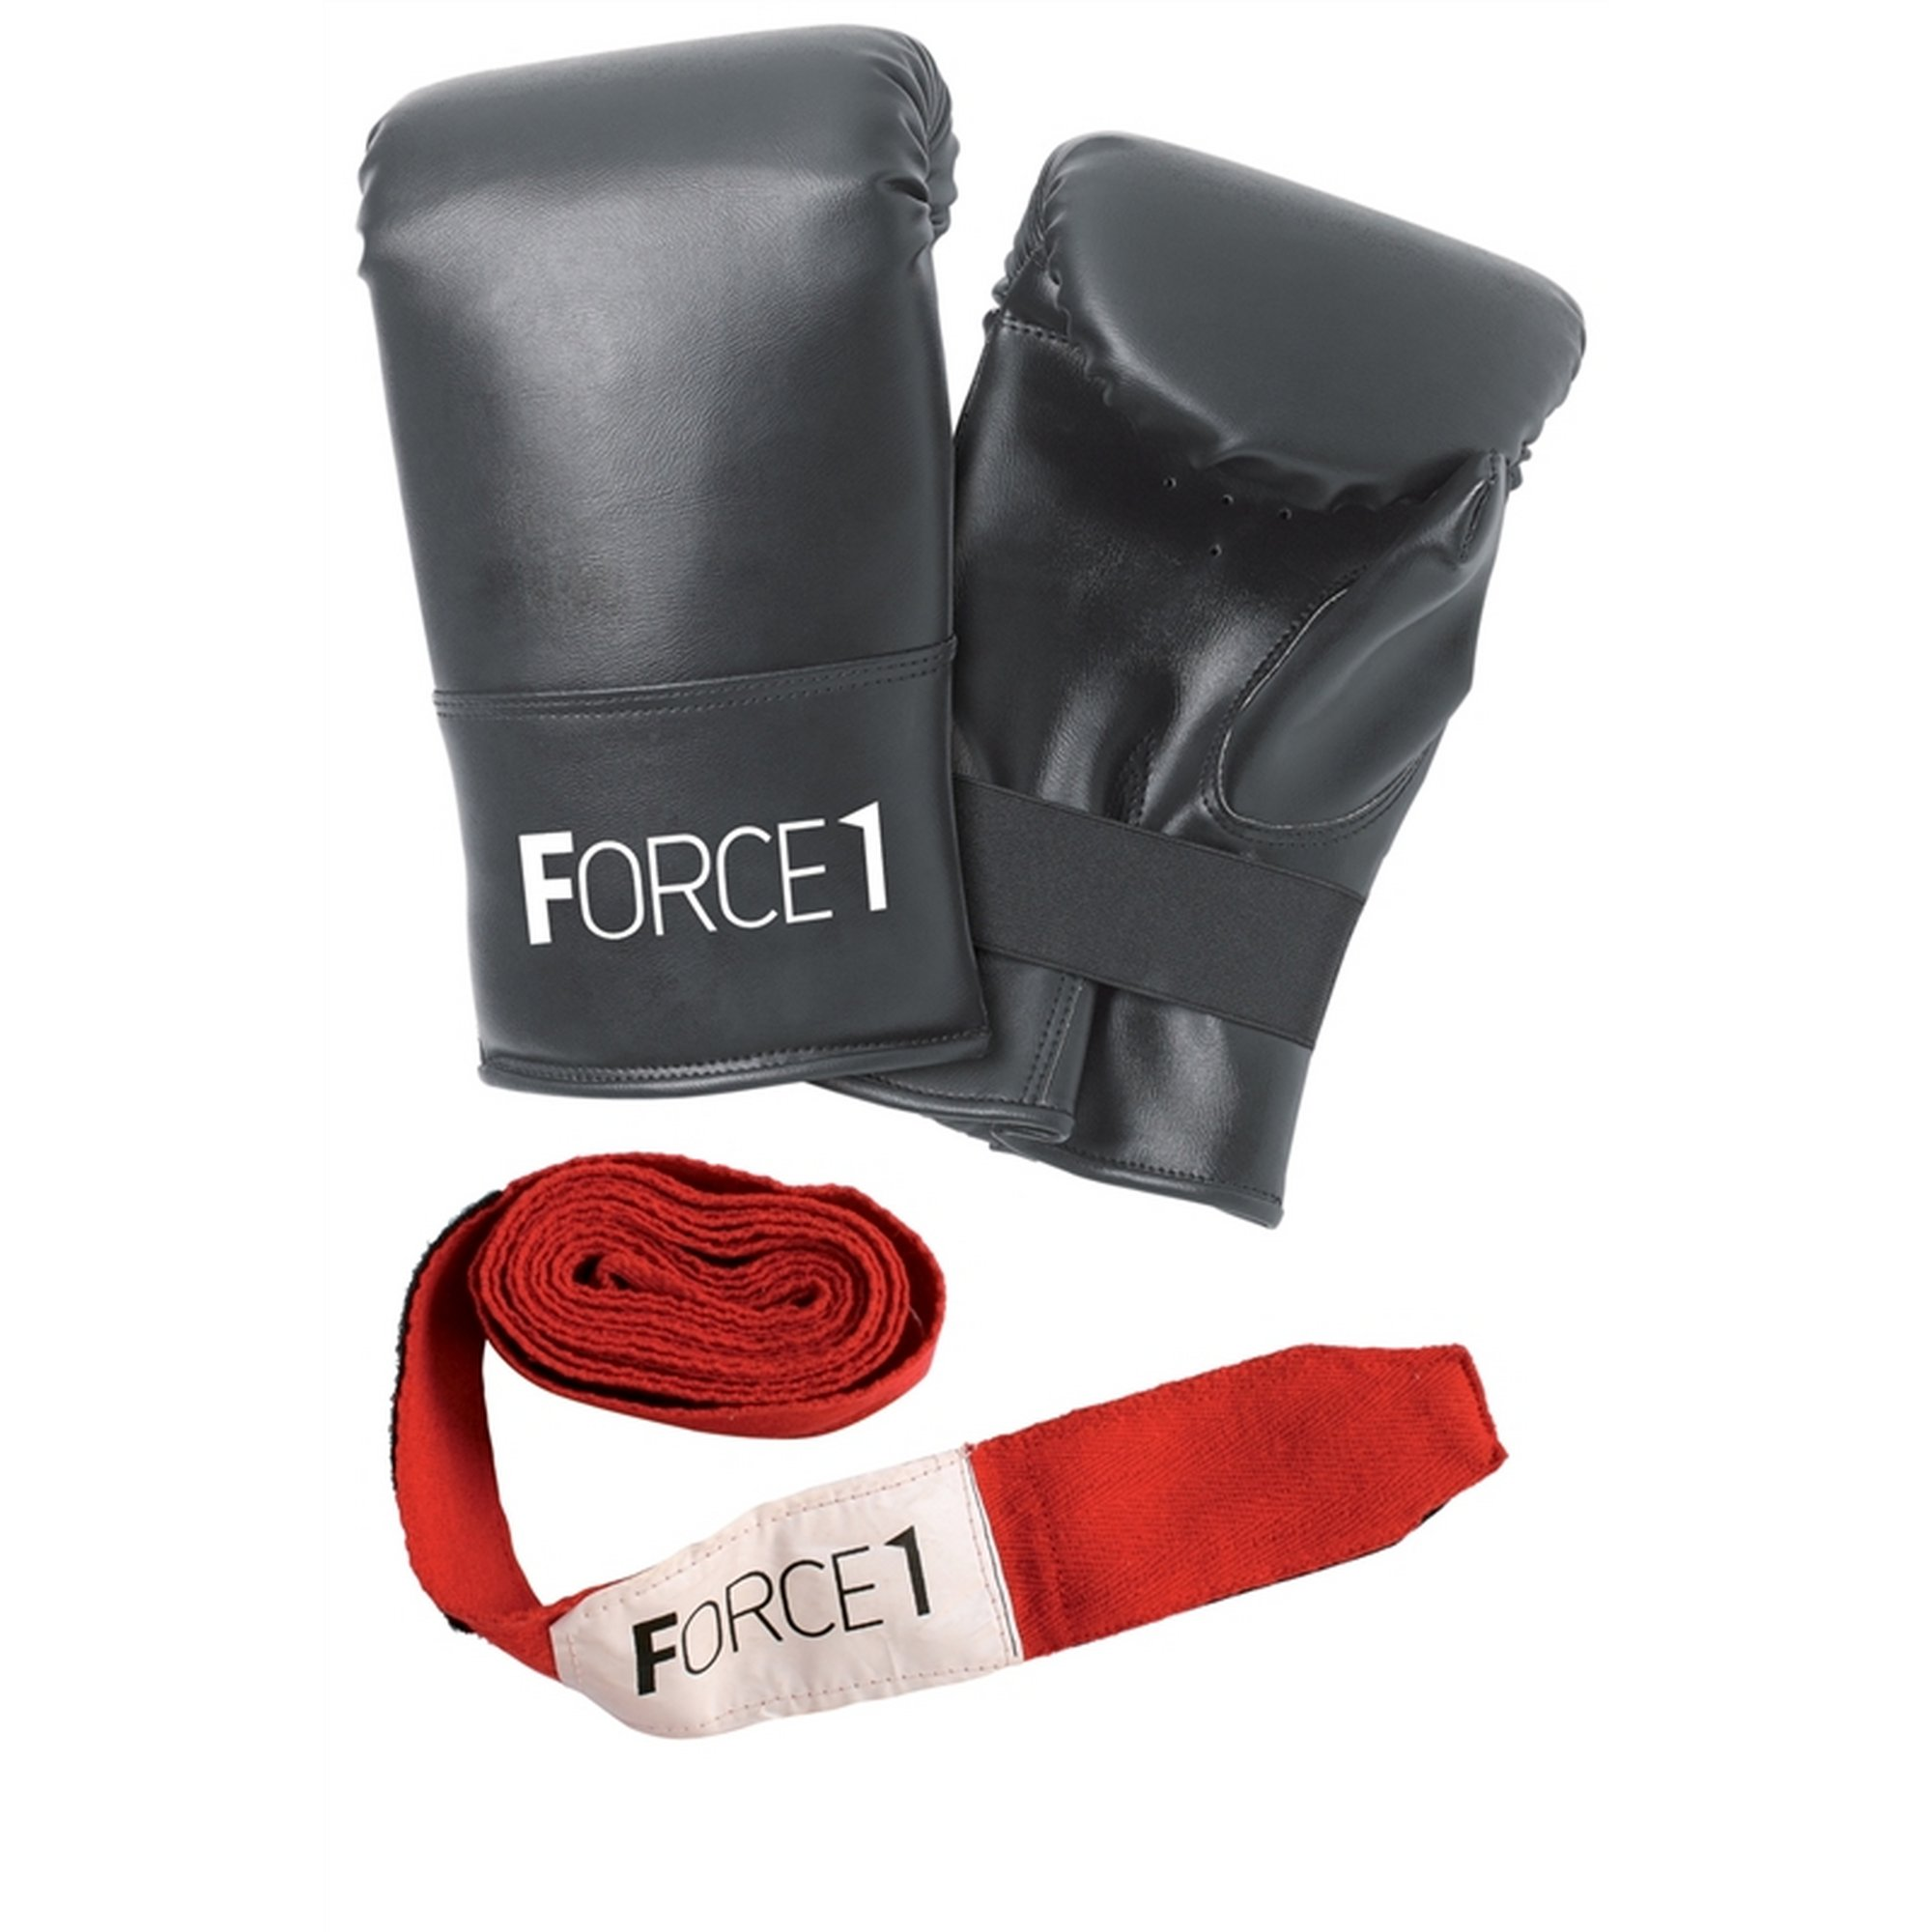 Image of Force 1 Boxing Mits and Wrist Straps